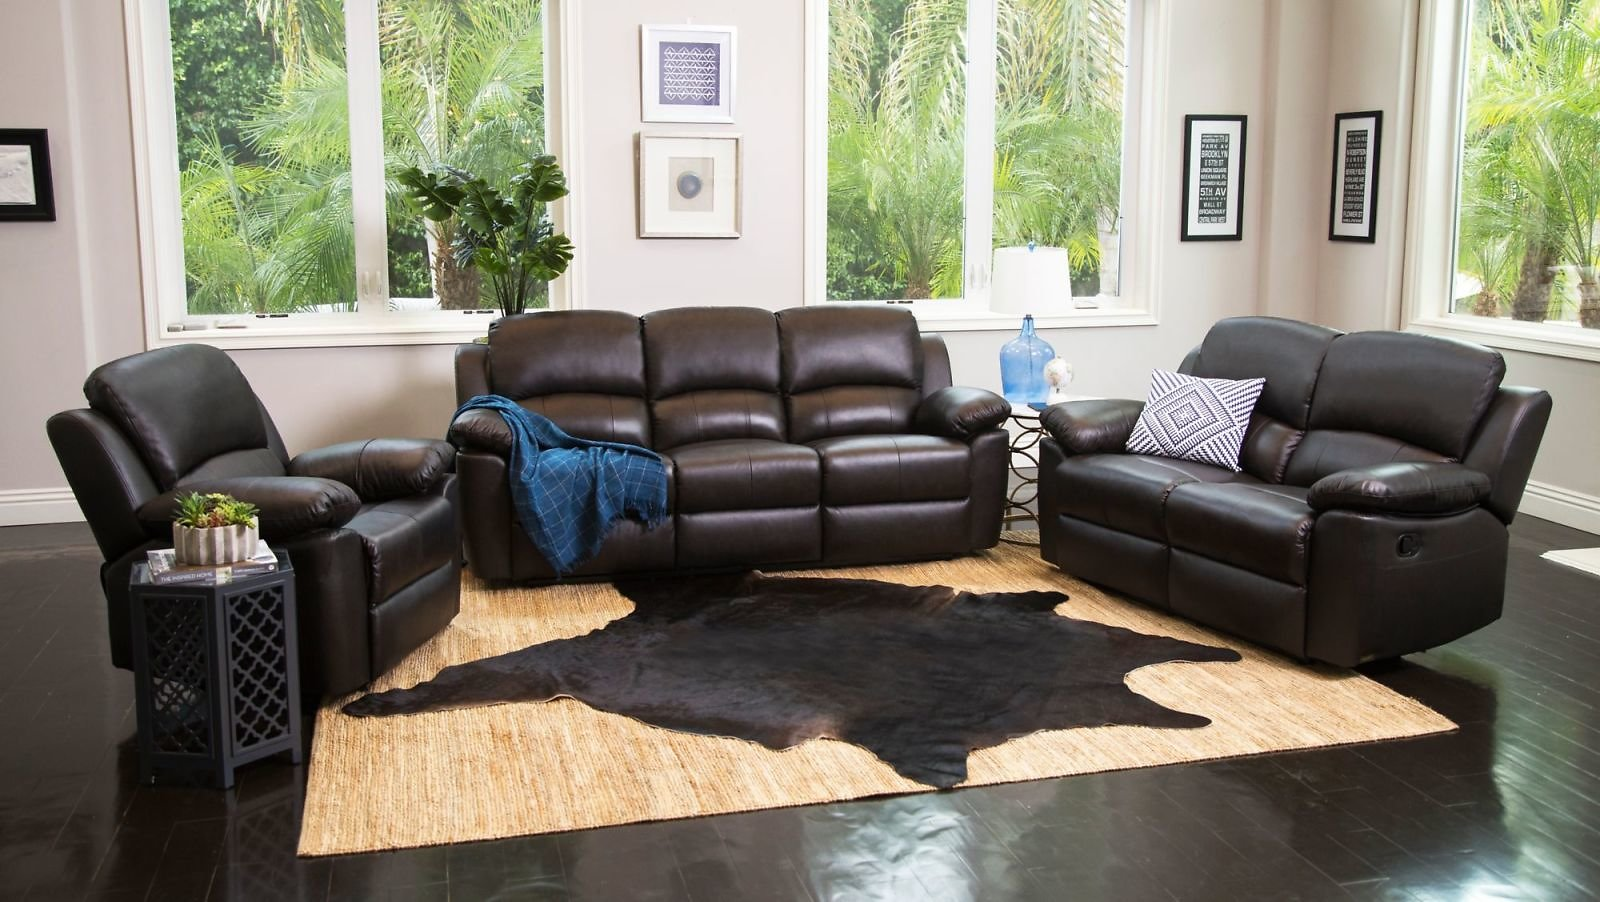 Abbyson Living Toscana 3-Pc. Reclining Set - Espresso Brown with FREE White Glove Delivery